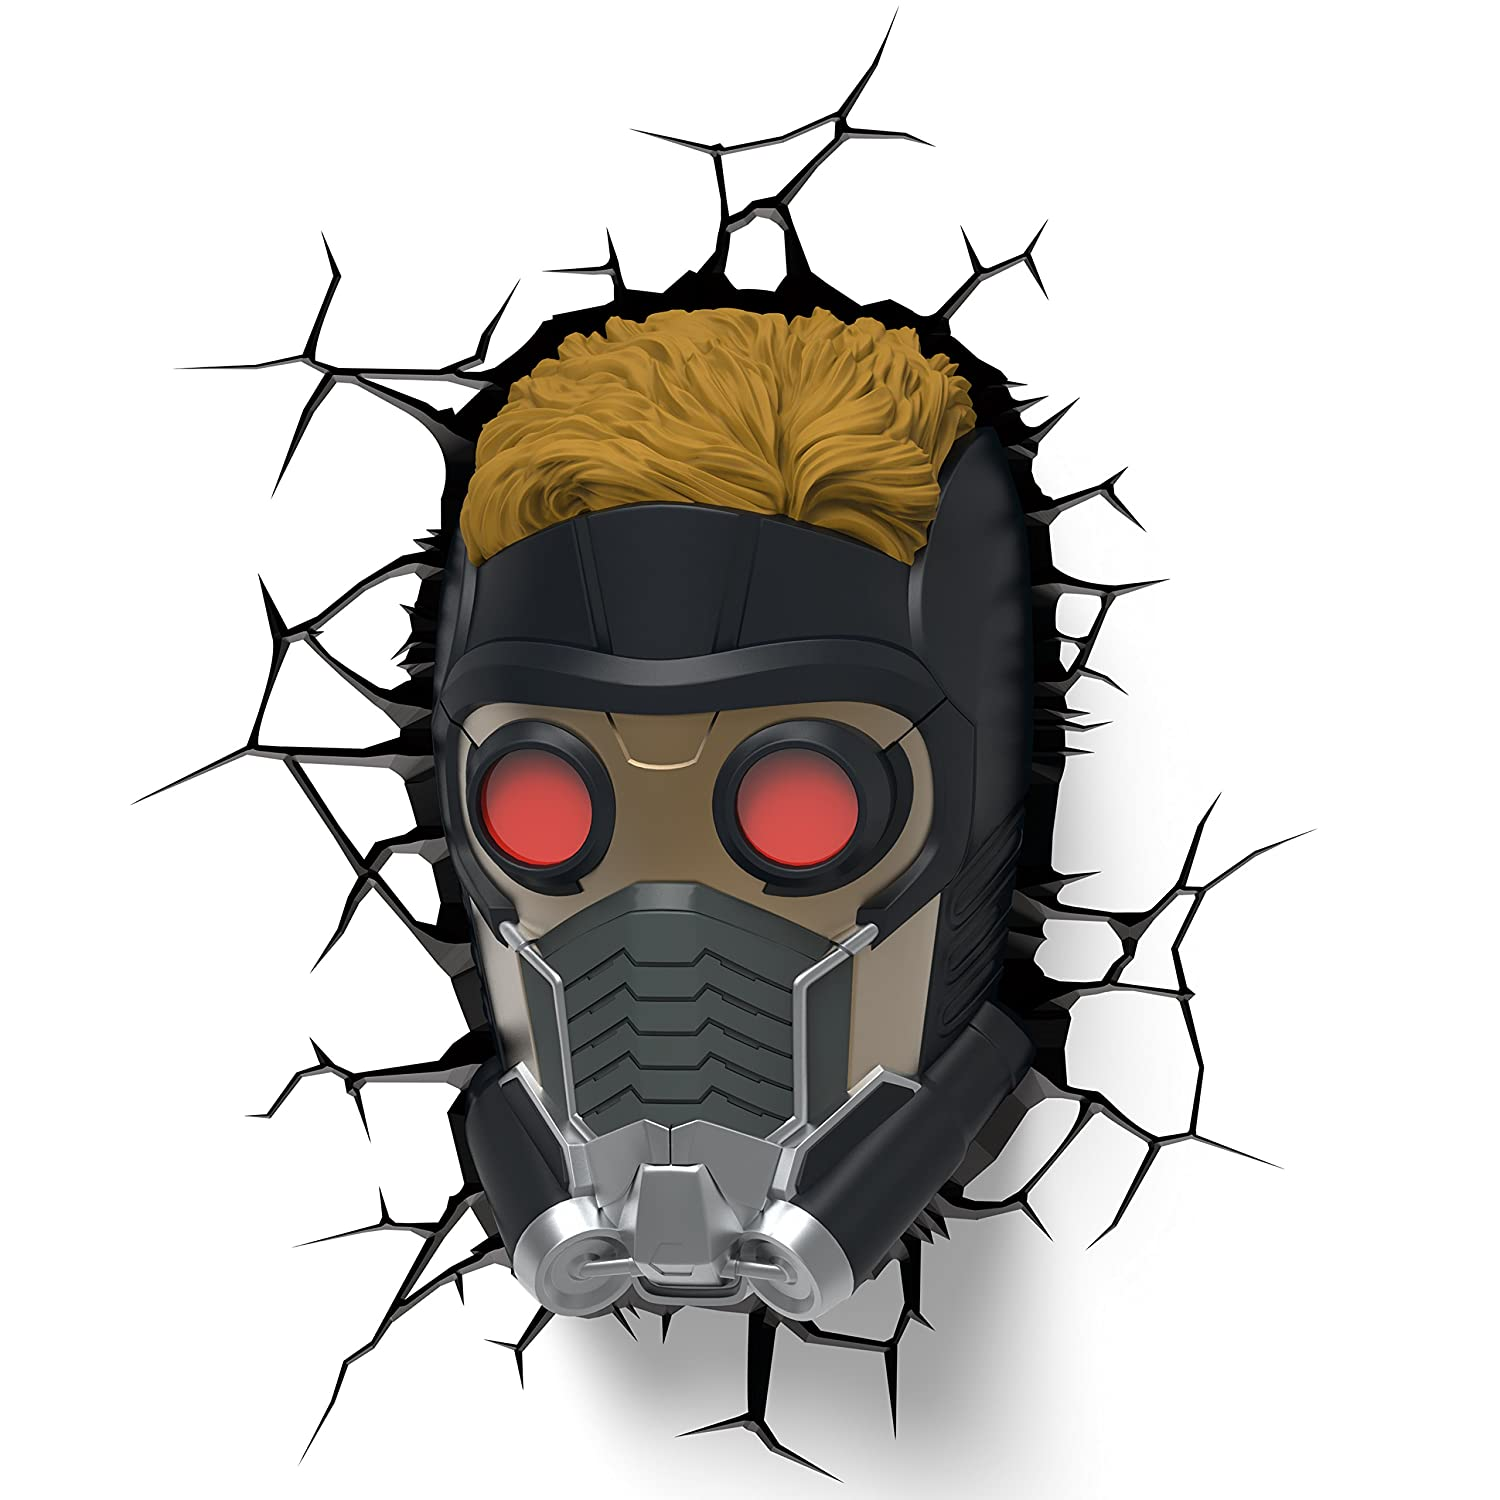 3DLightFX Marvel Guardians of the Galaxy Star Lord 3D Deco Light